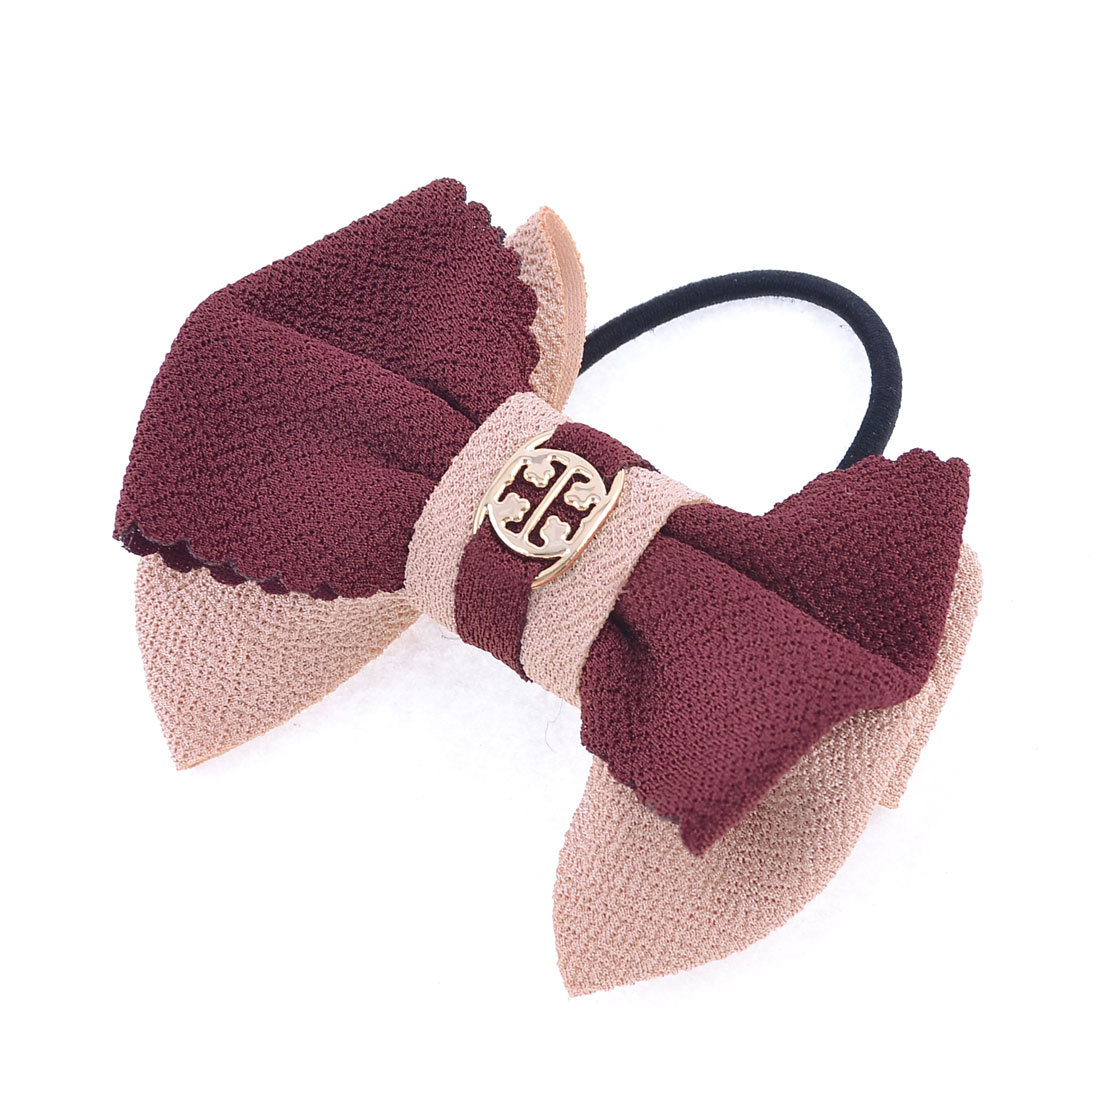 Pale Pink Burgundy Fabric Bowtie Decor Hair Tie Ponytail Holder for Lady